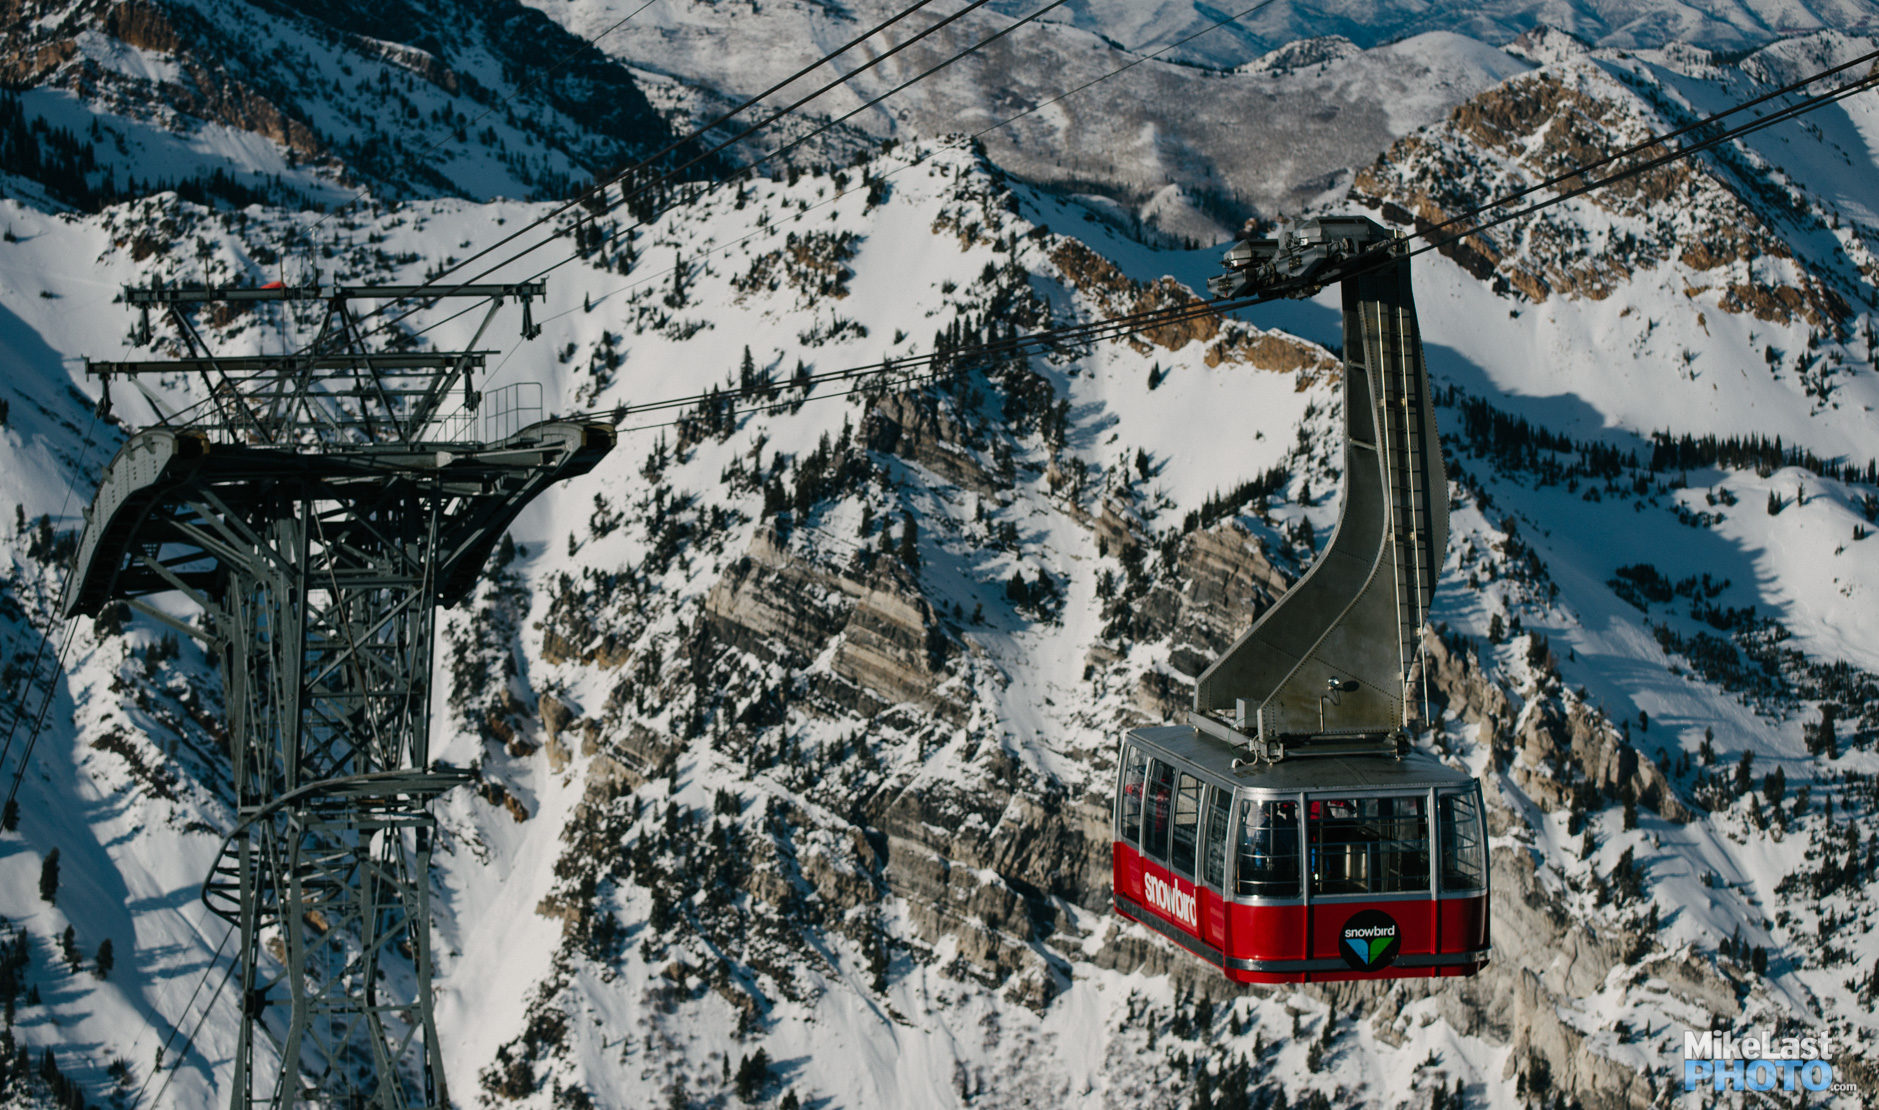 The tram arrives at the summit of Hidden Peak at Snowbird Mountain Resort.